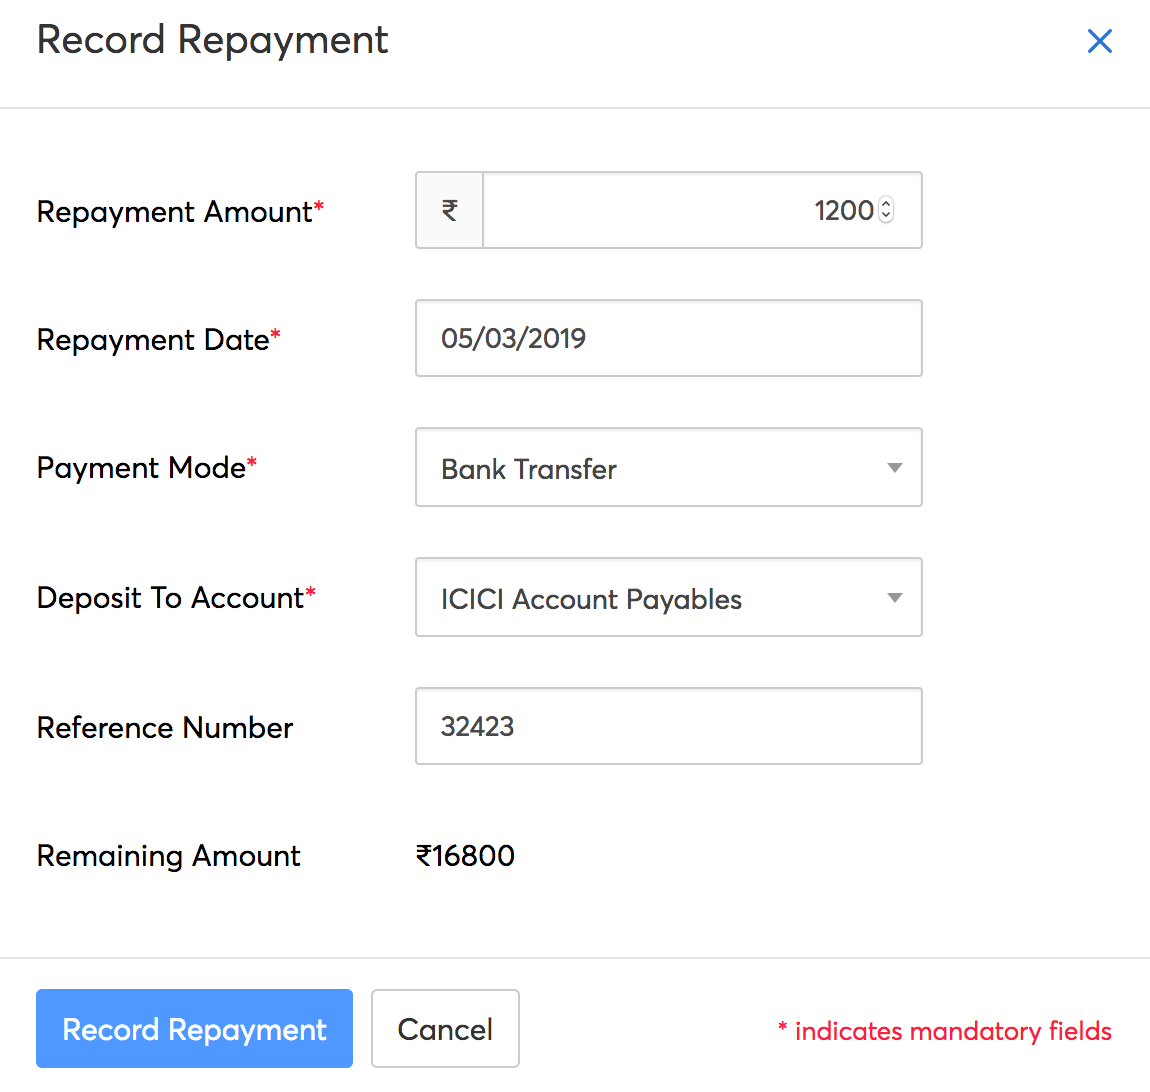 Record Repayment Details